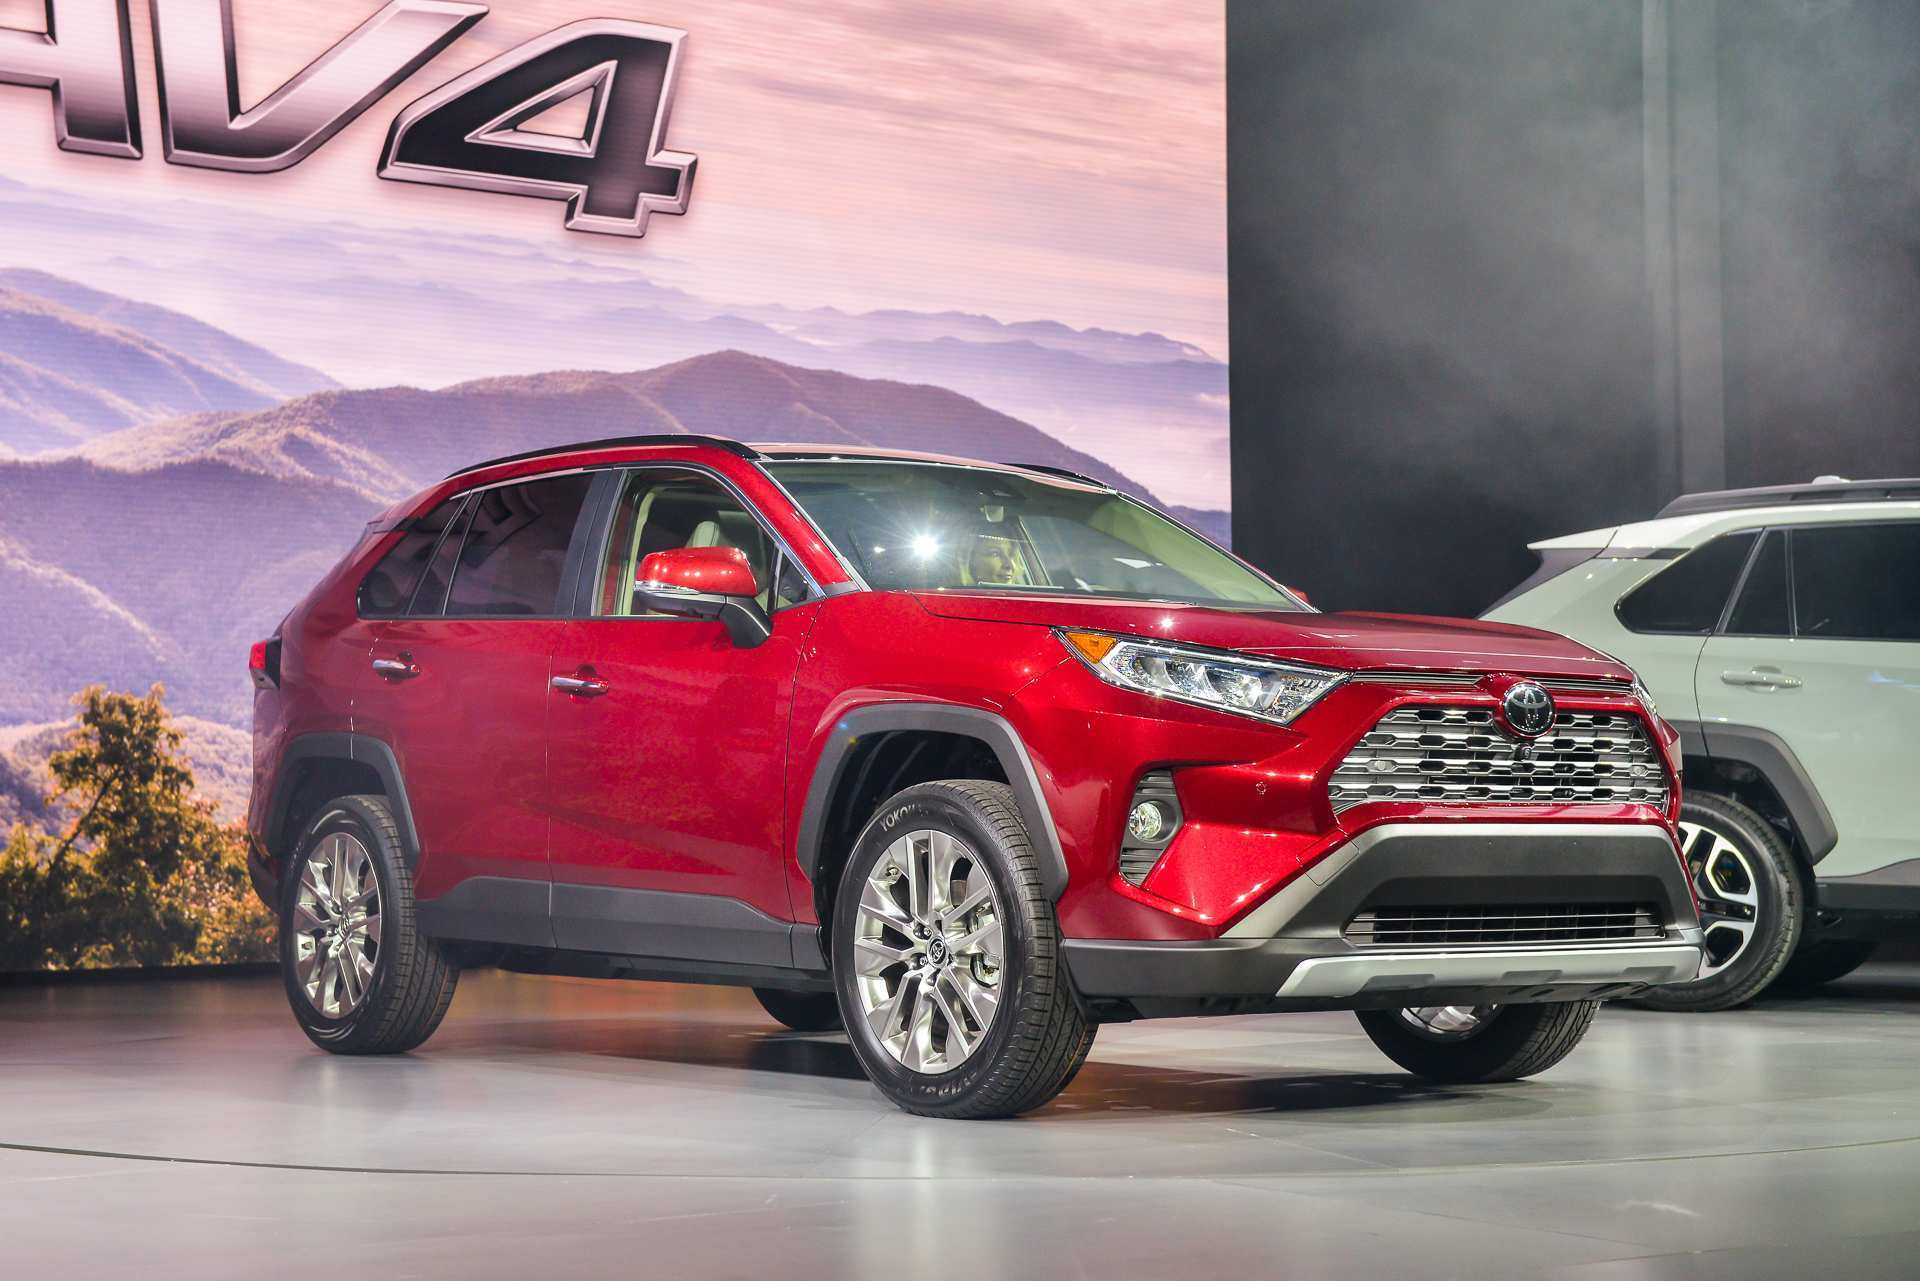 85 The Best 2020 Toyota Rav4 Hybrid Price And Review